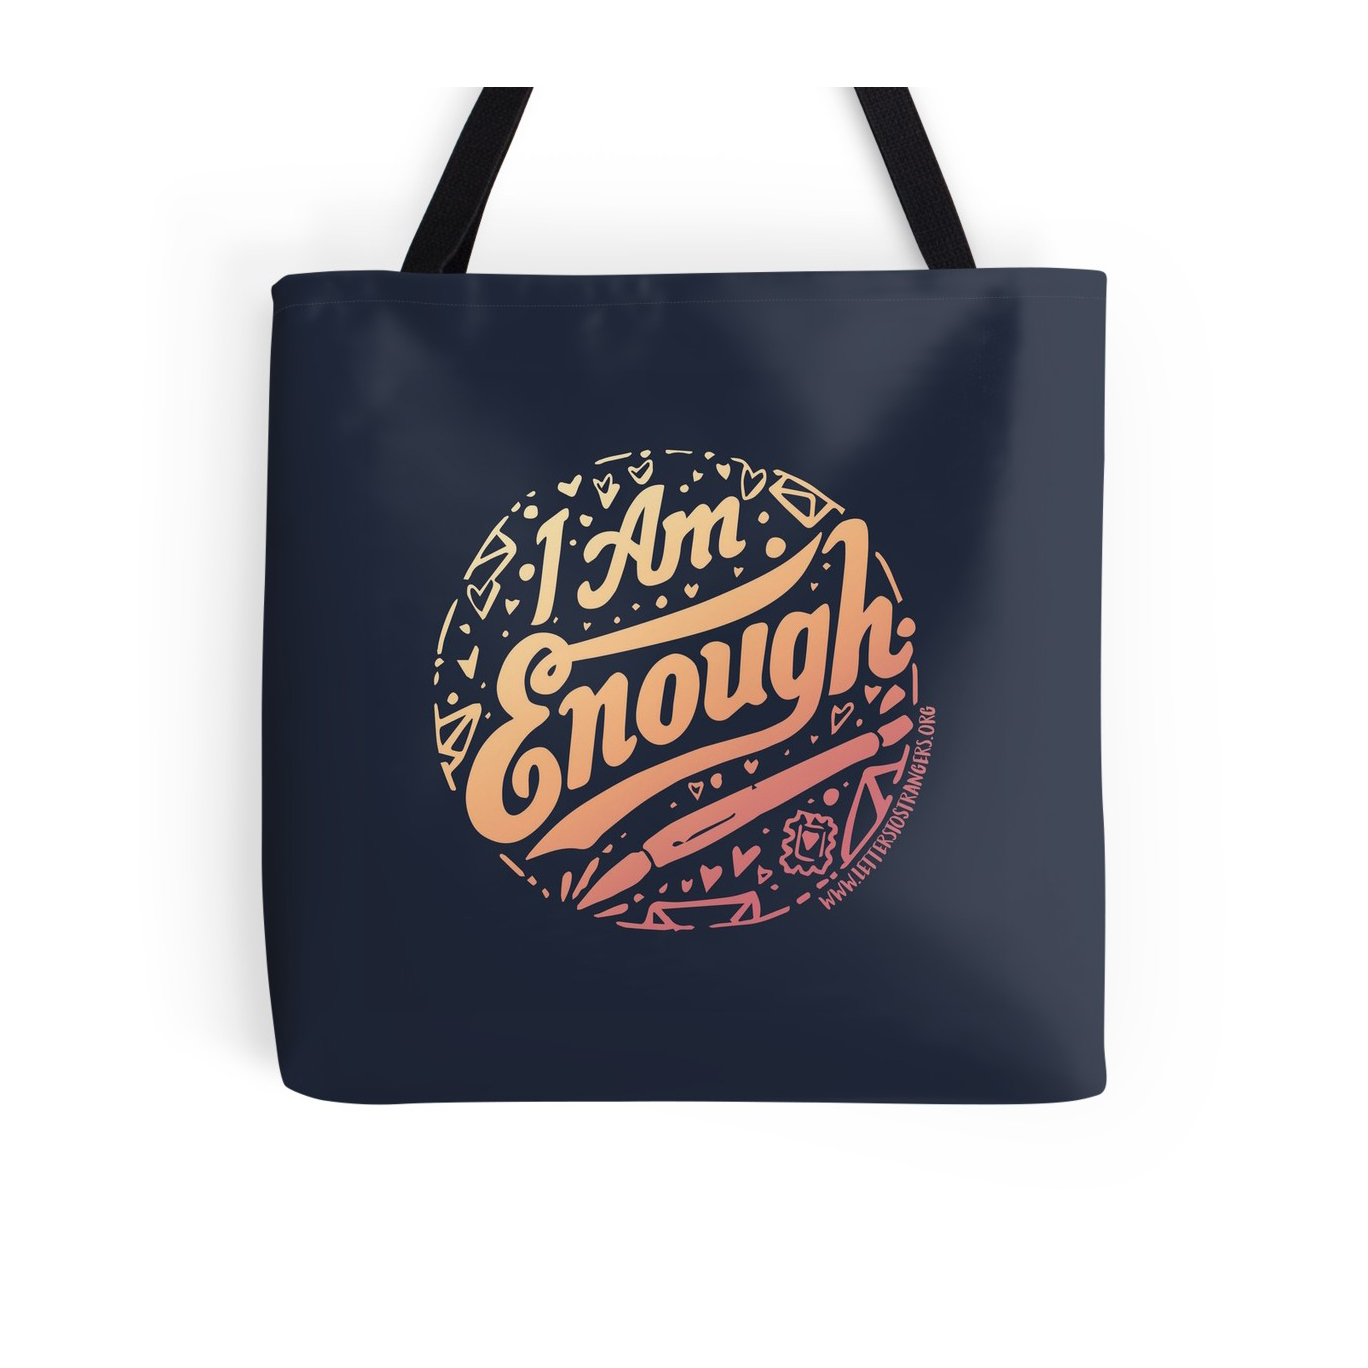 Tote bag of I. Am. Enough.